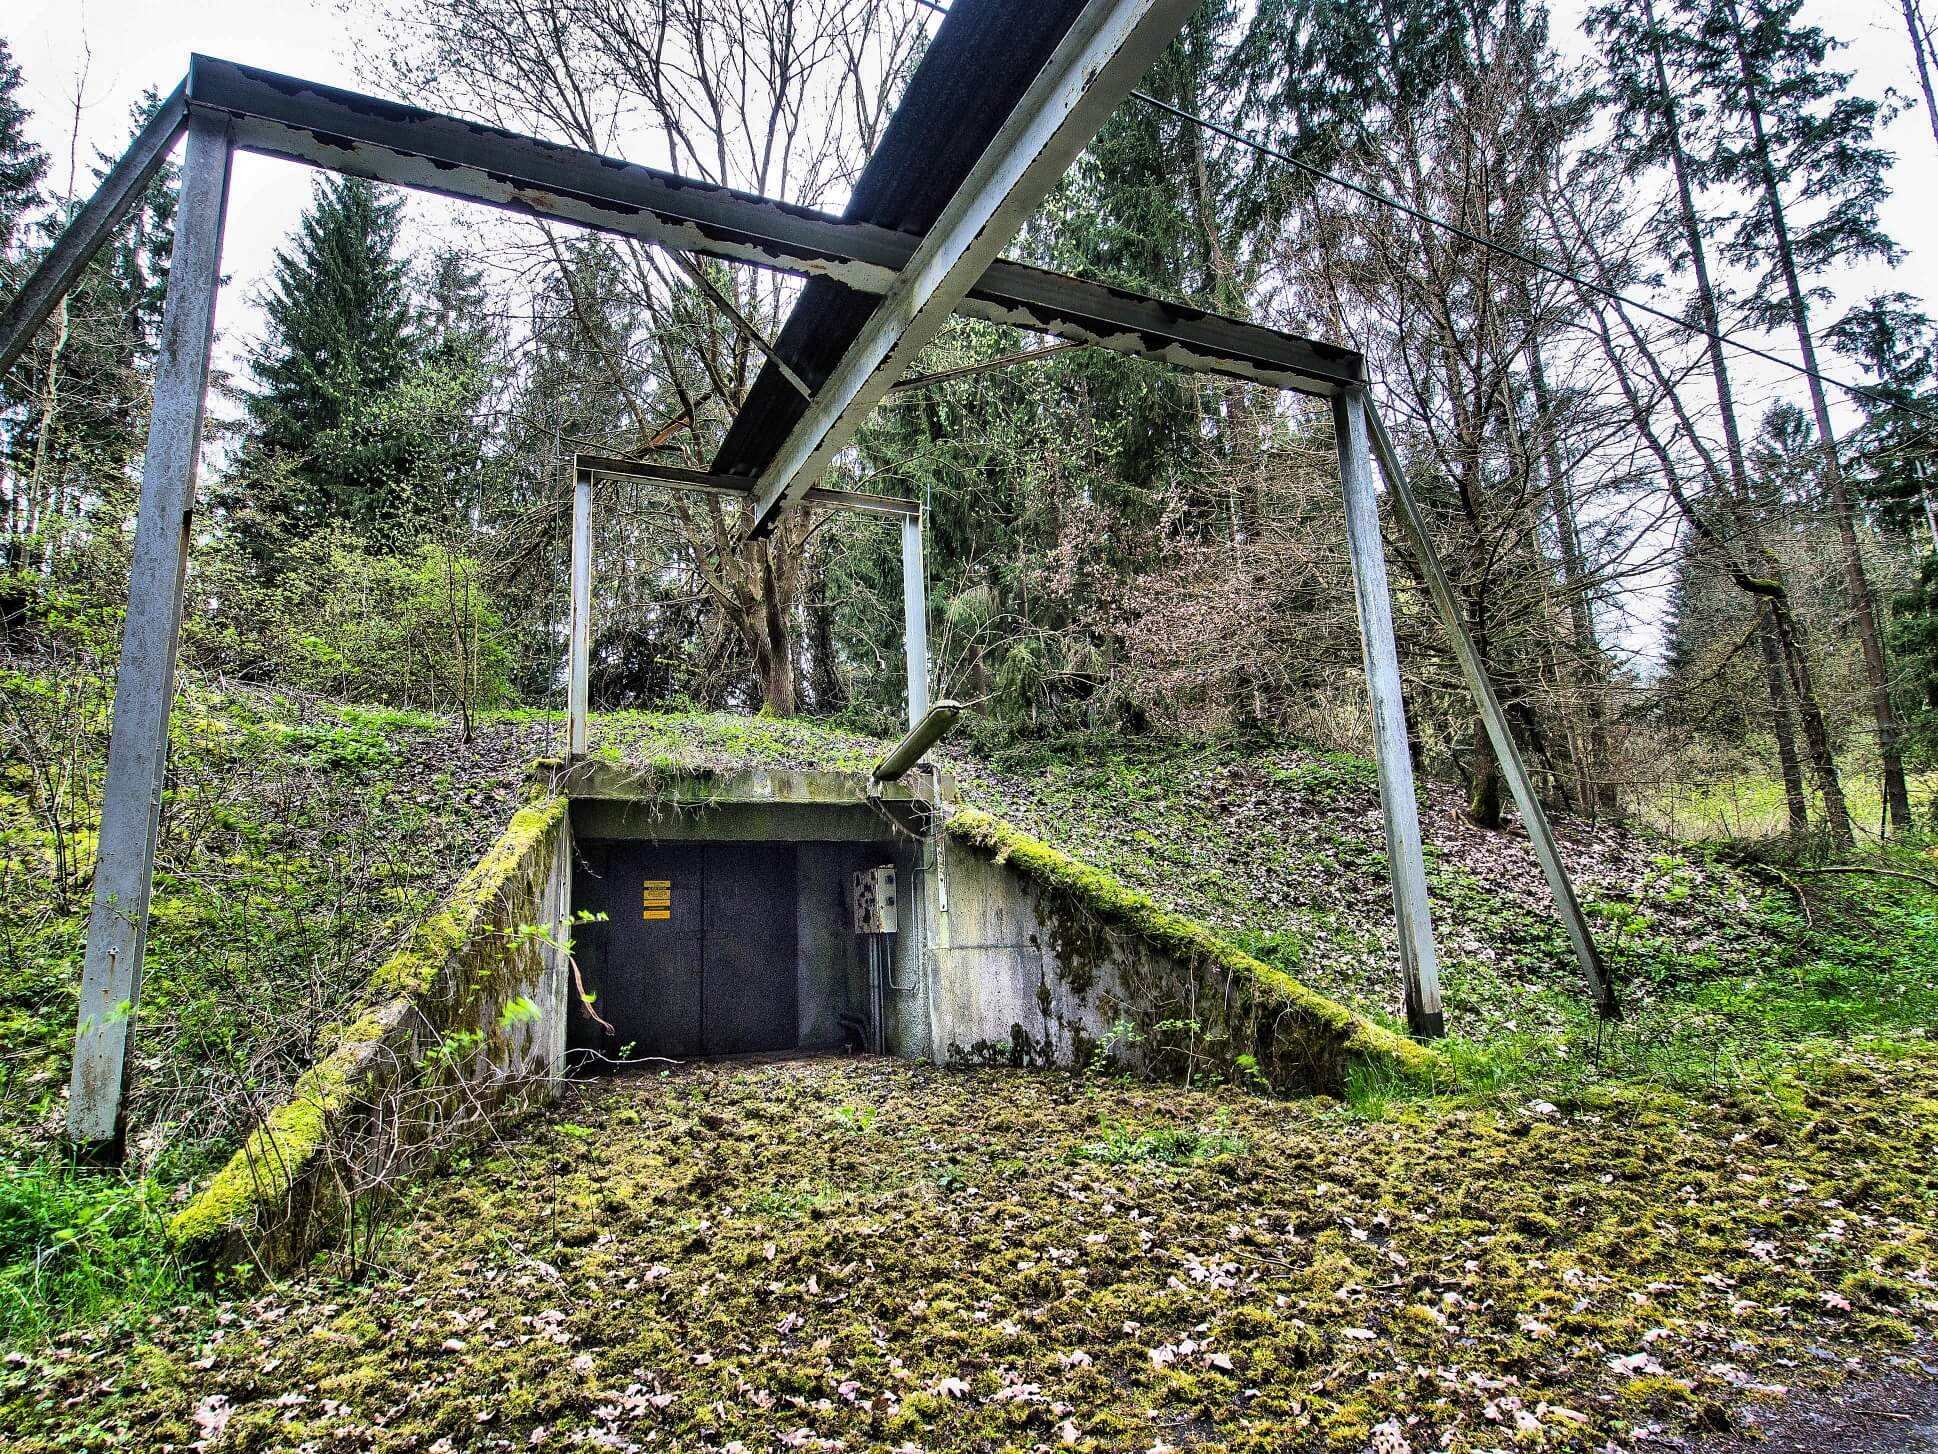 Munitionsbunker